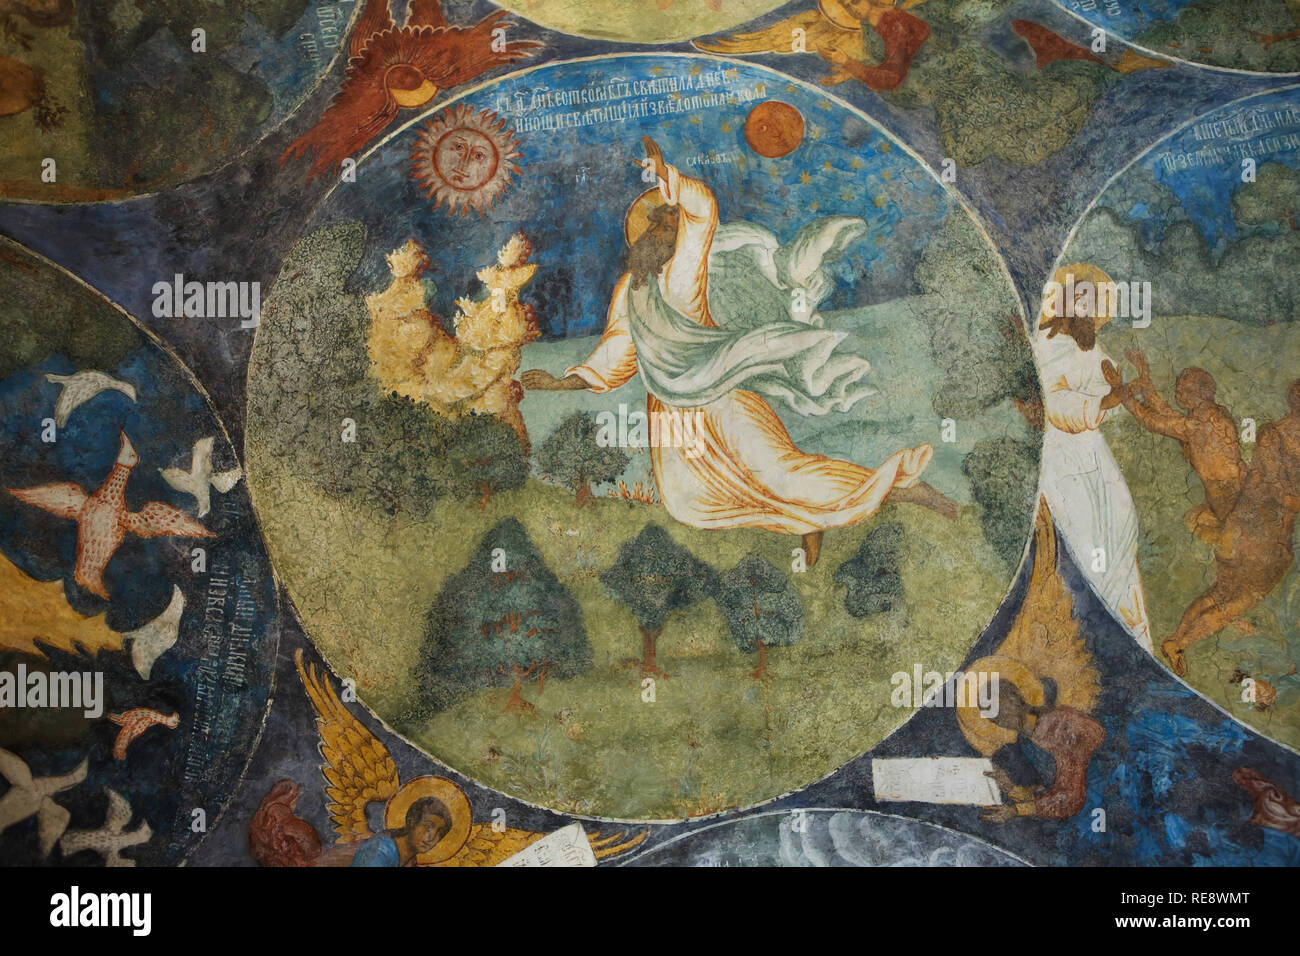 God the Father creating the Sun and the Moon in the fourth day of Creation. Fresco by Russian icon painters Gury Nikitin and Sila Savin (1680) in the north gallery (papert) of the Church of Elijah the Prophet in Yaroslavl, Russia. - Stock Image